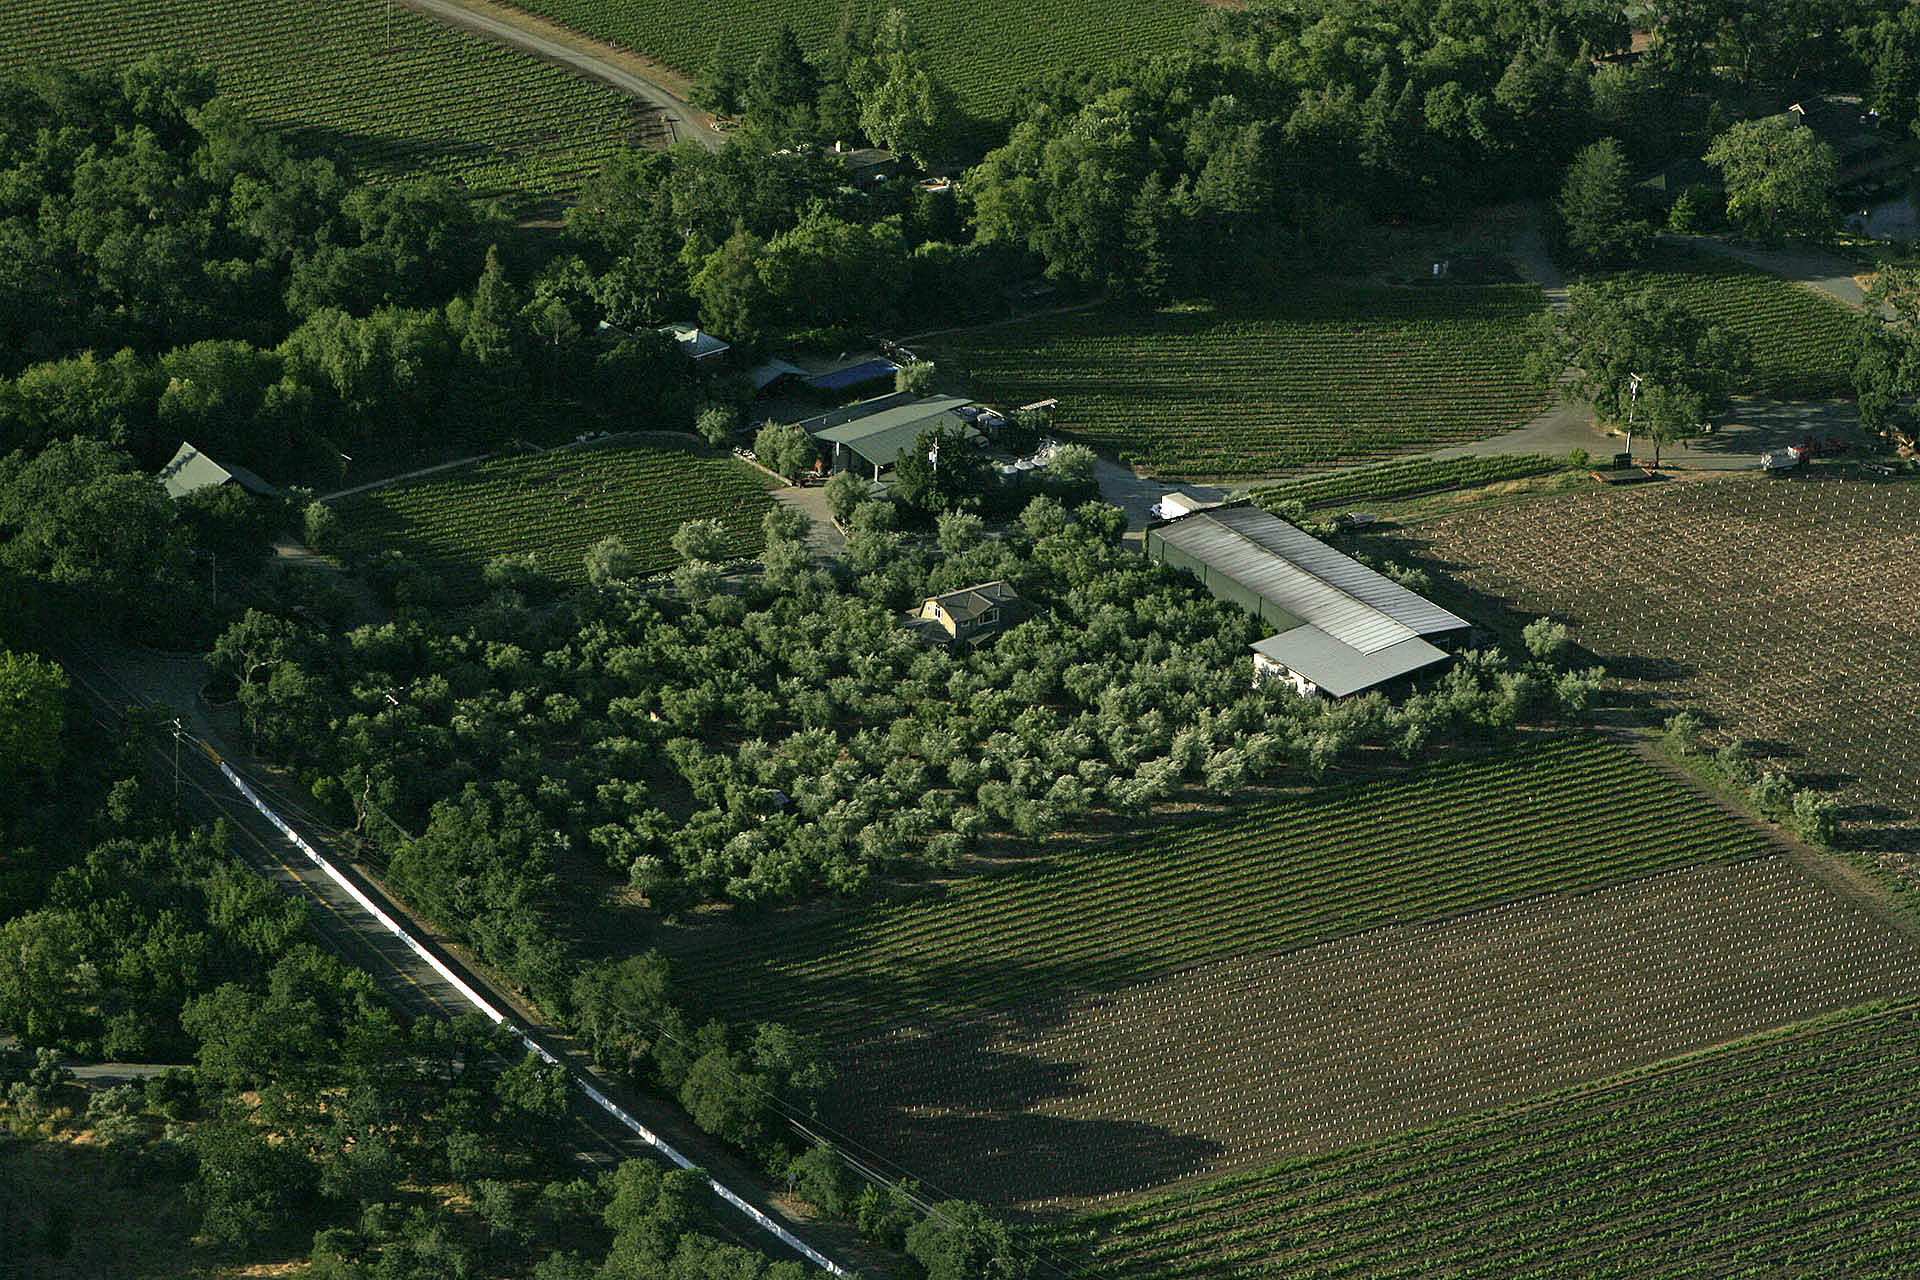 Aerial view of the Estate Vineyard, showing the 100+ year-old olive grove.